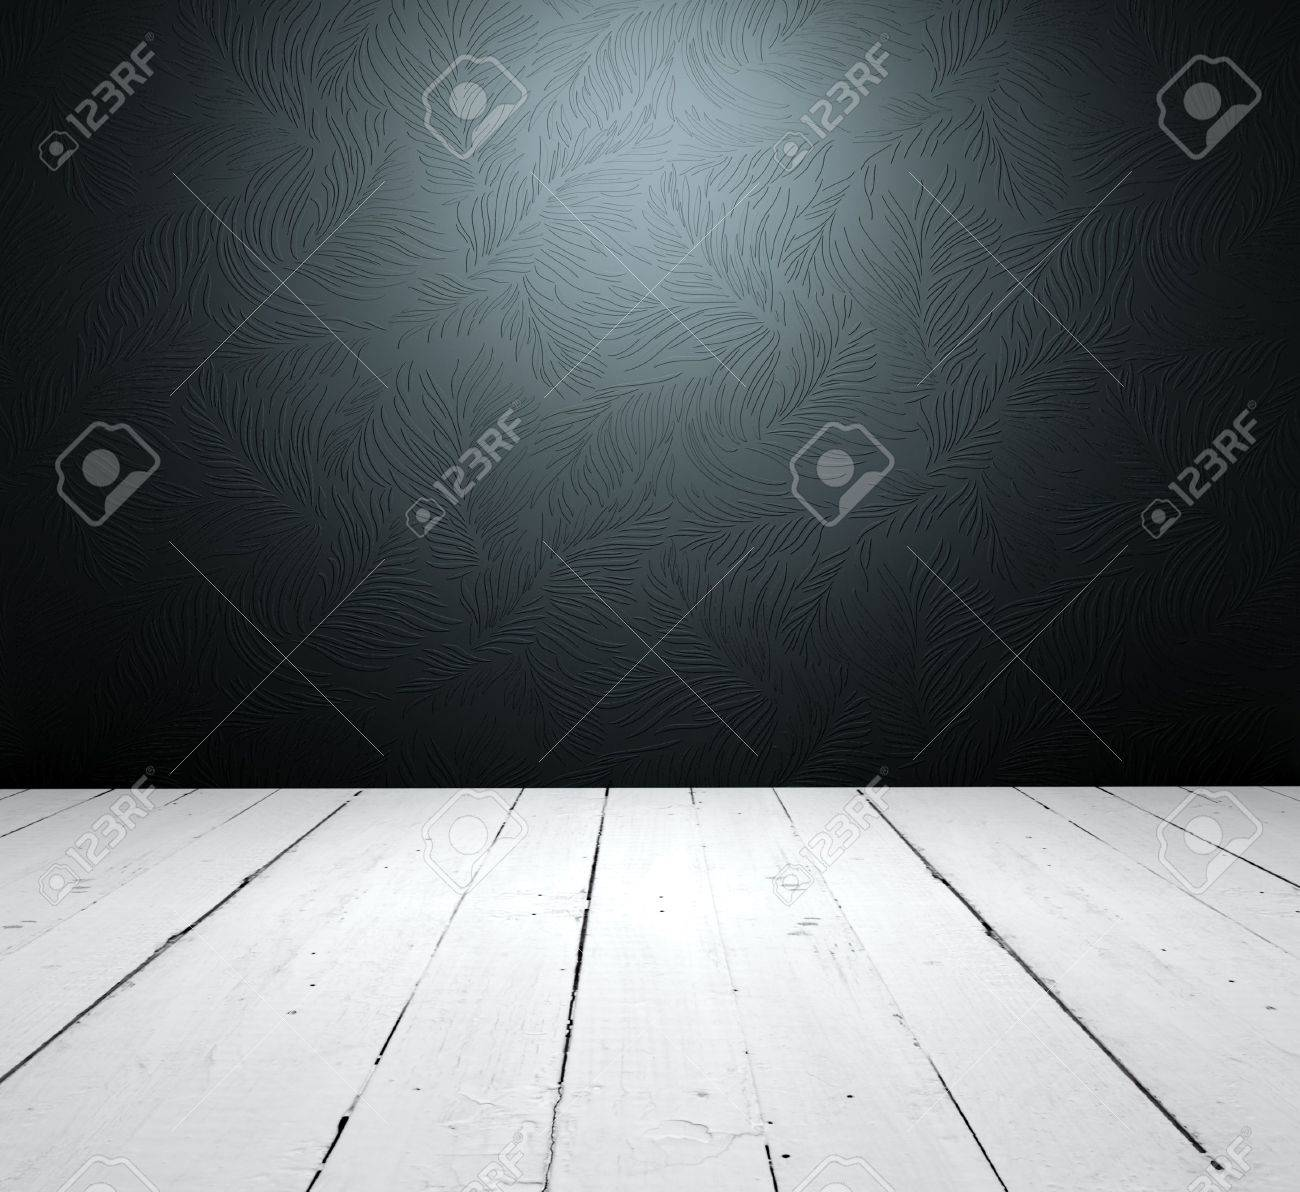 Grungy floor and floral wallpaper it is empty interior Stock Photo - 6588386